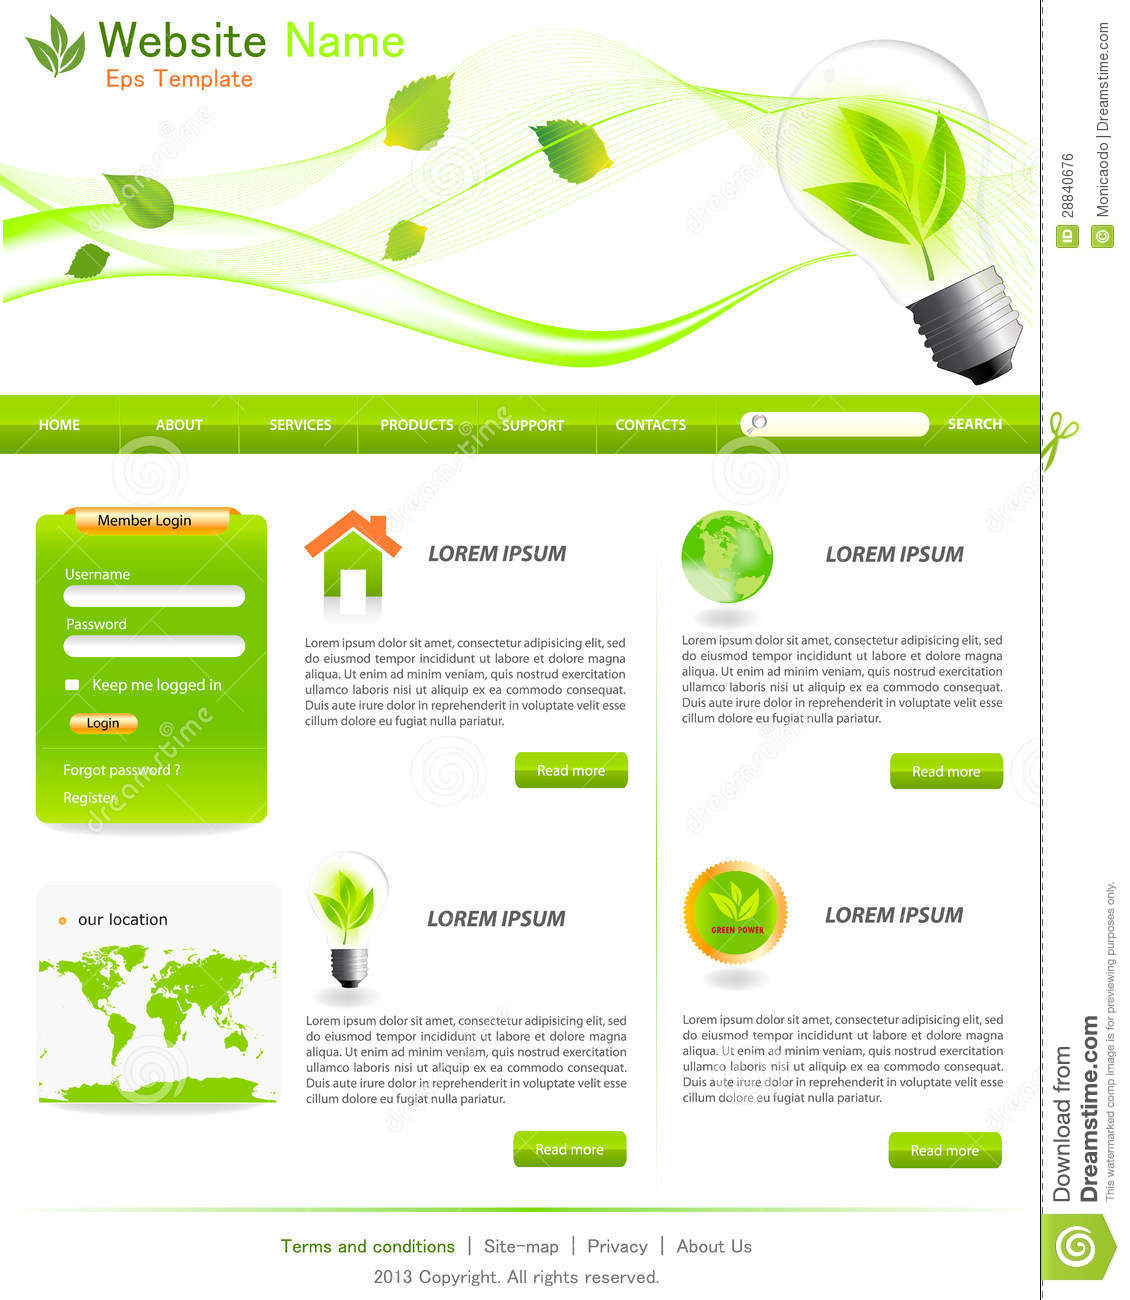 Green website templates royalty free stock image image for Website layout design software free download